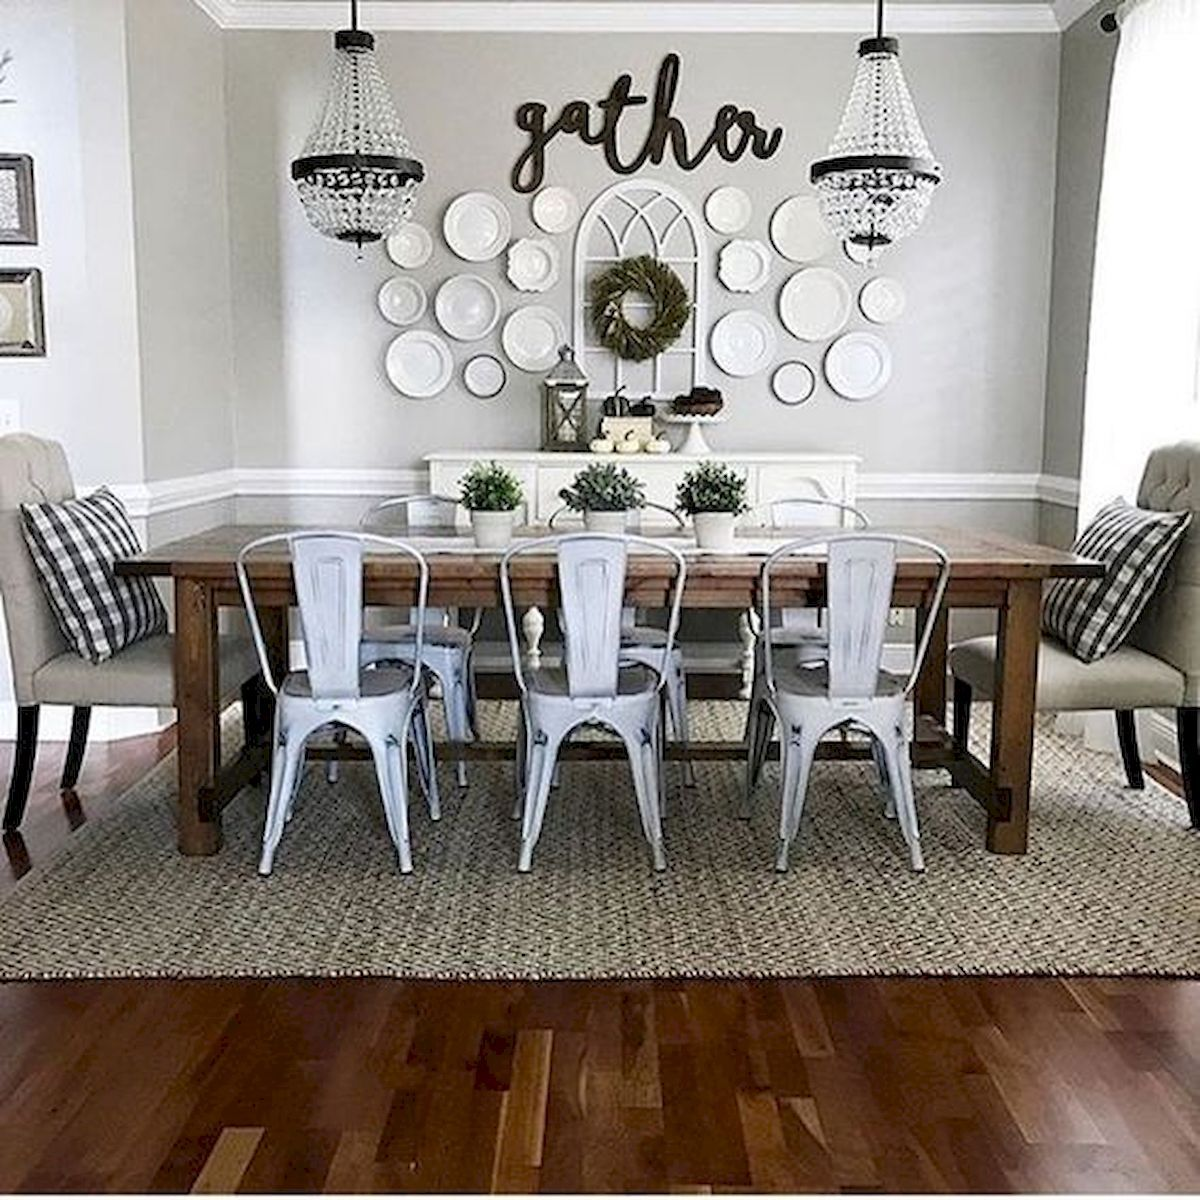 33 Adorable Dining Room Wall Art Ideas And Decor #diningrooms